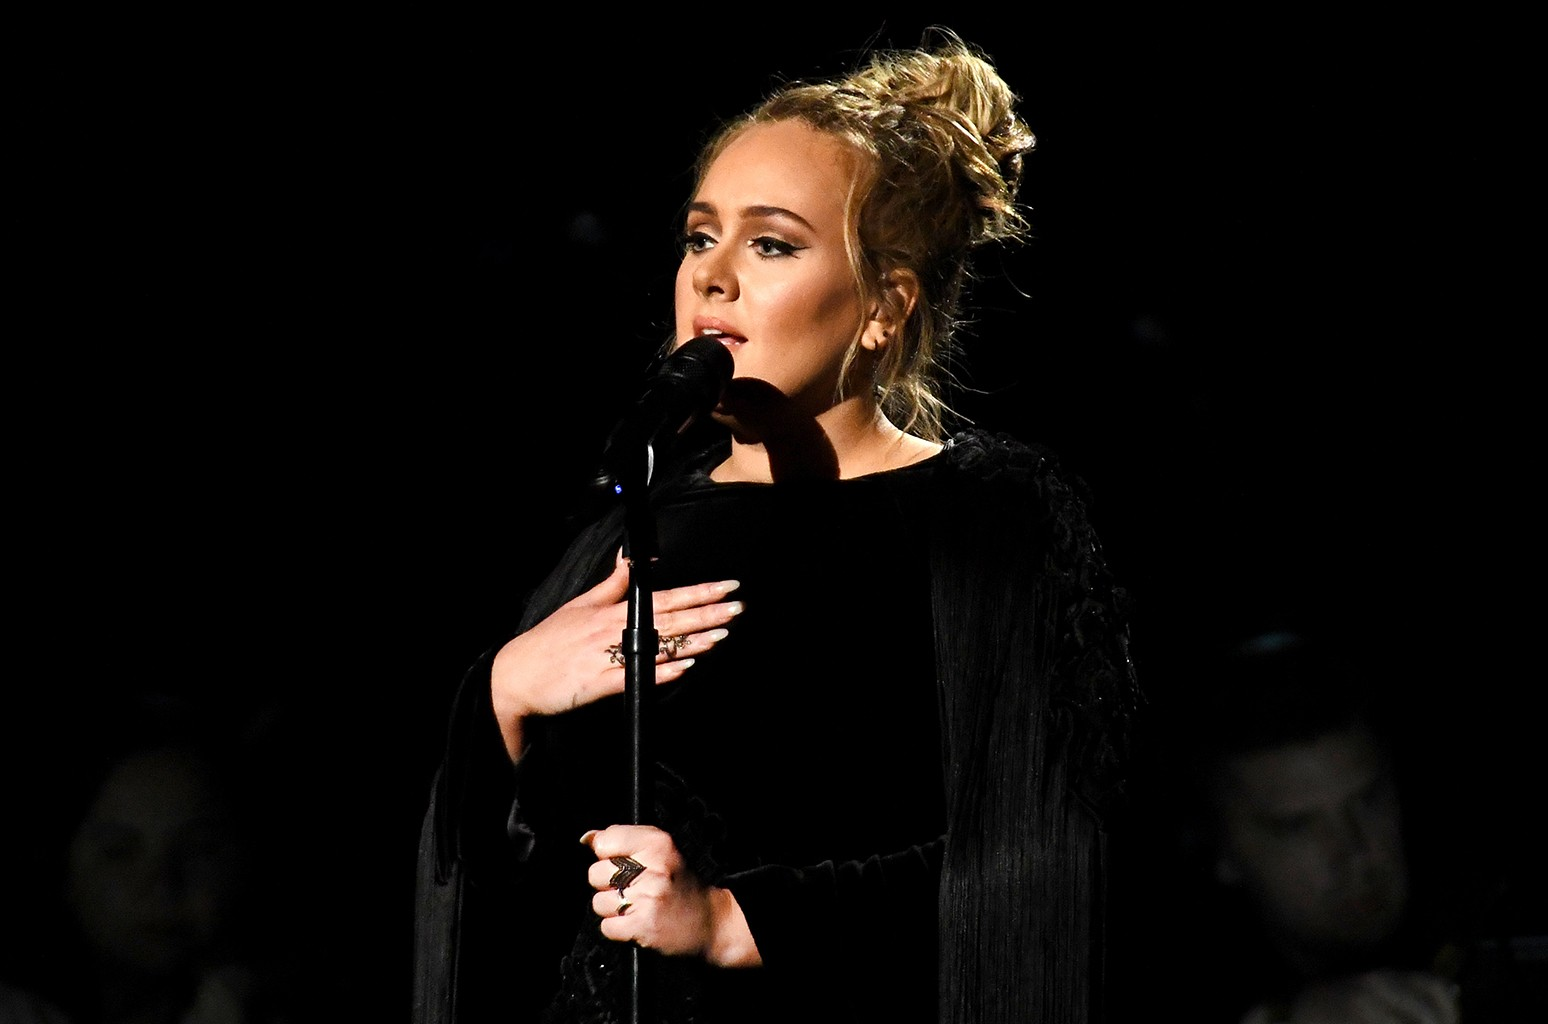 Adele performing a tribute to George Michael onstage during The 59th Grammy Awards at Staples Center on Feb. 12, 2017 in Los Angeles.